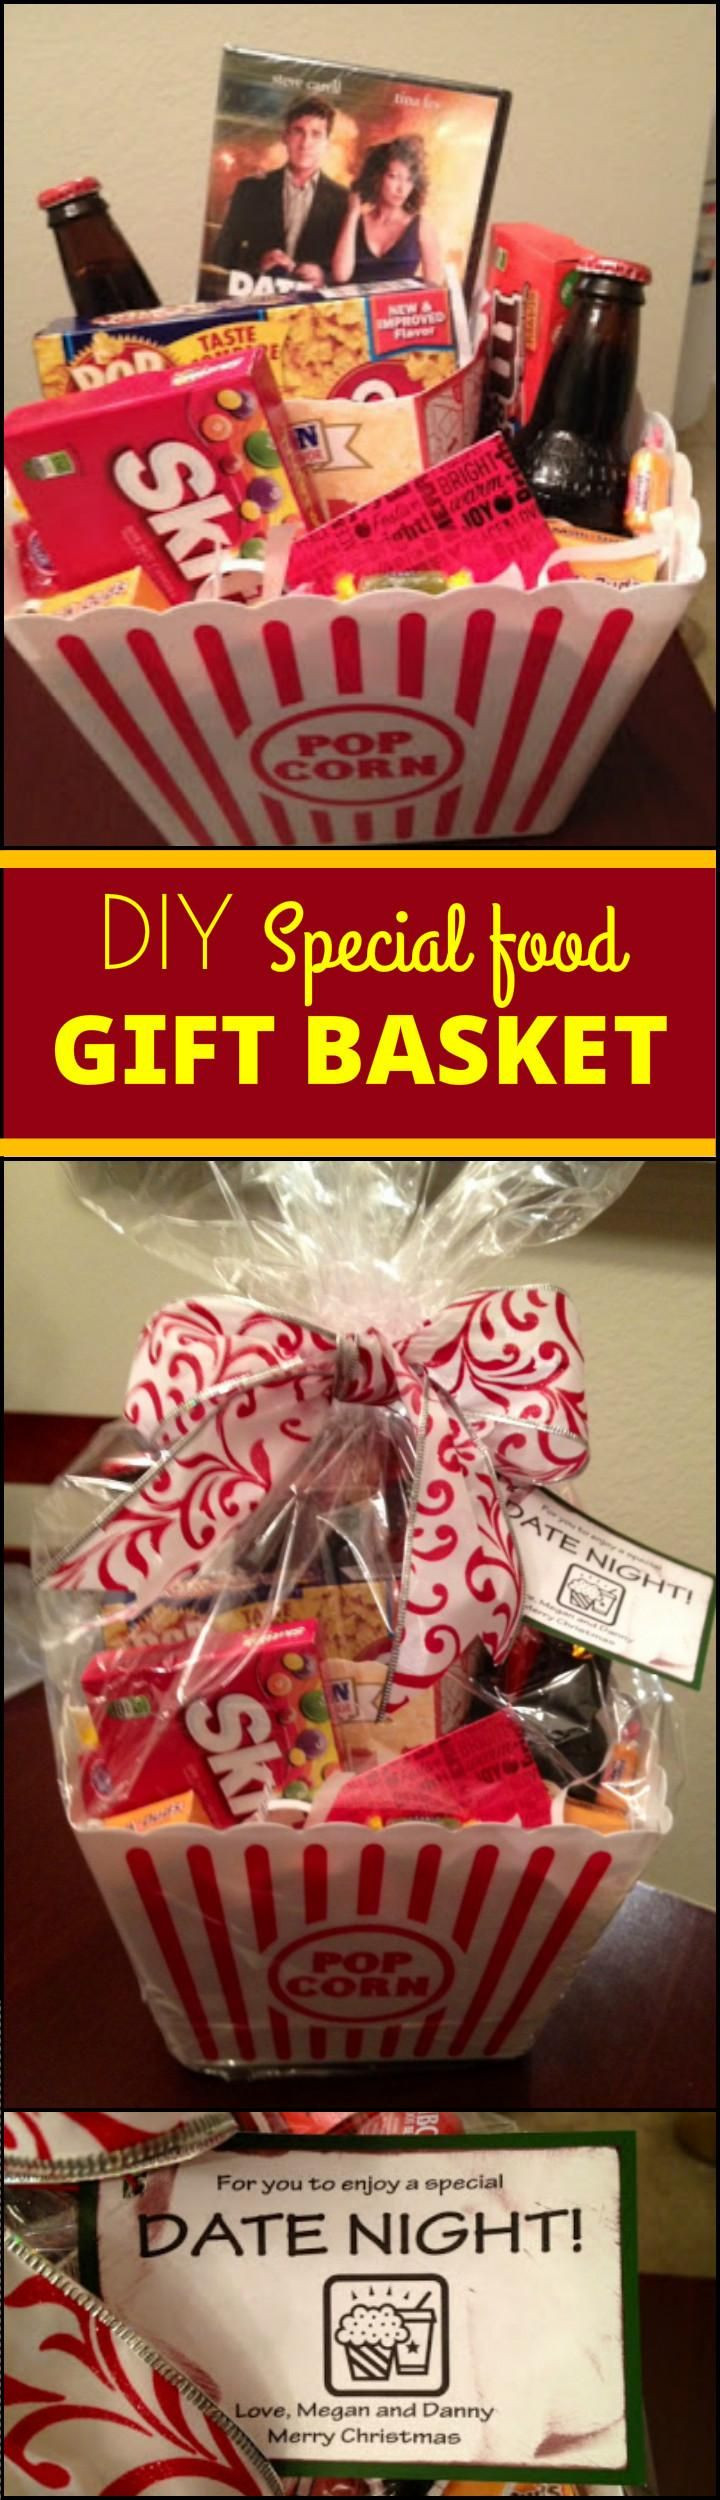 Best ideas about Cheap Homemade Gift Basket Ideas . Save or Pin 25 unique Cheap t baskets ideas on Pinterest Now.